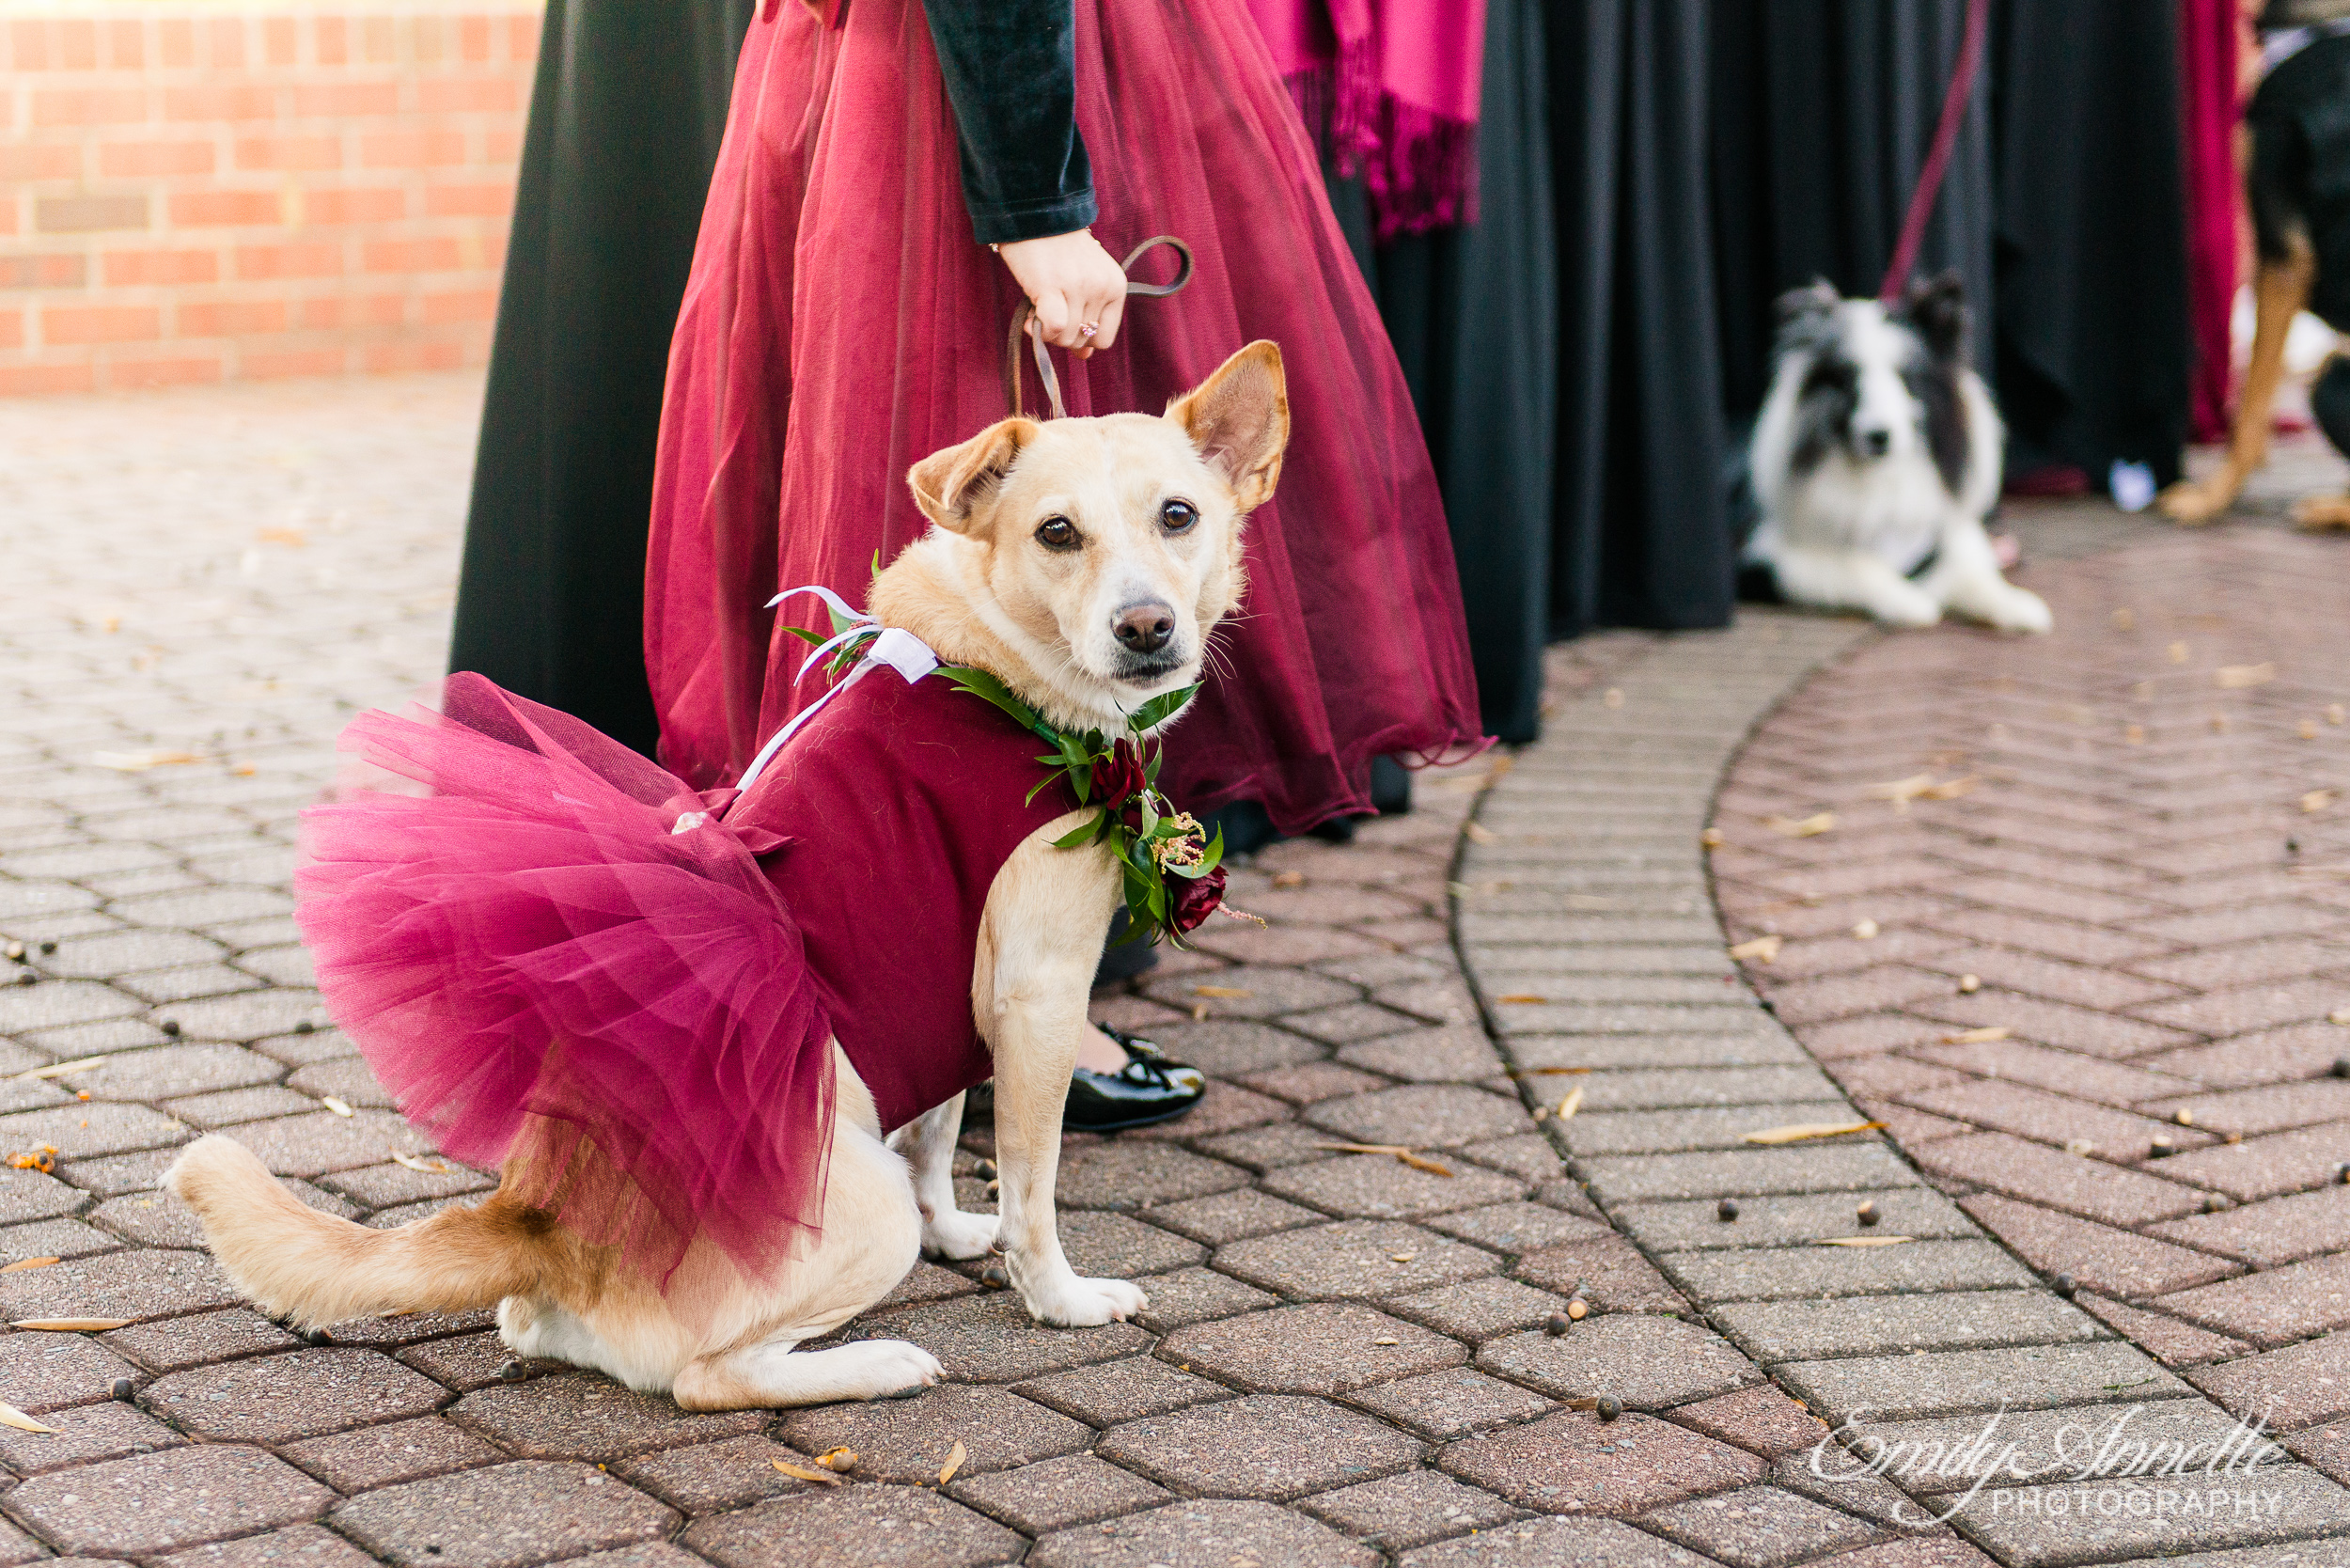 A dog in a flower girl dress during an outdoor wedding ceremony at Willow Oaks Country Club in Richmond, Virginia